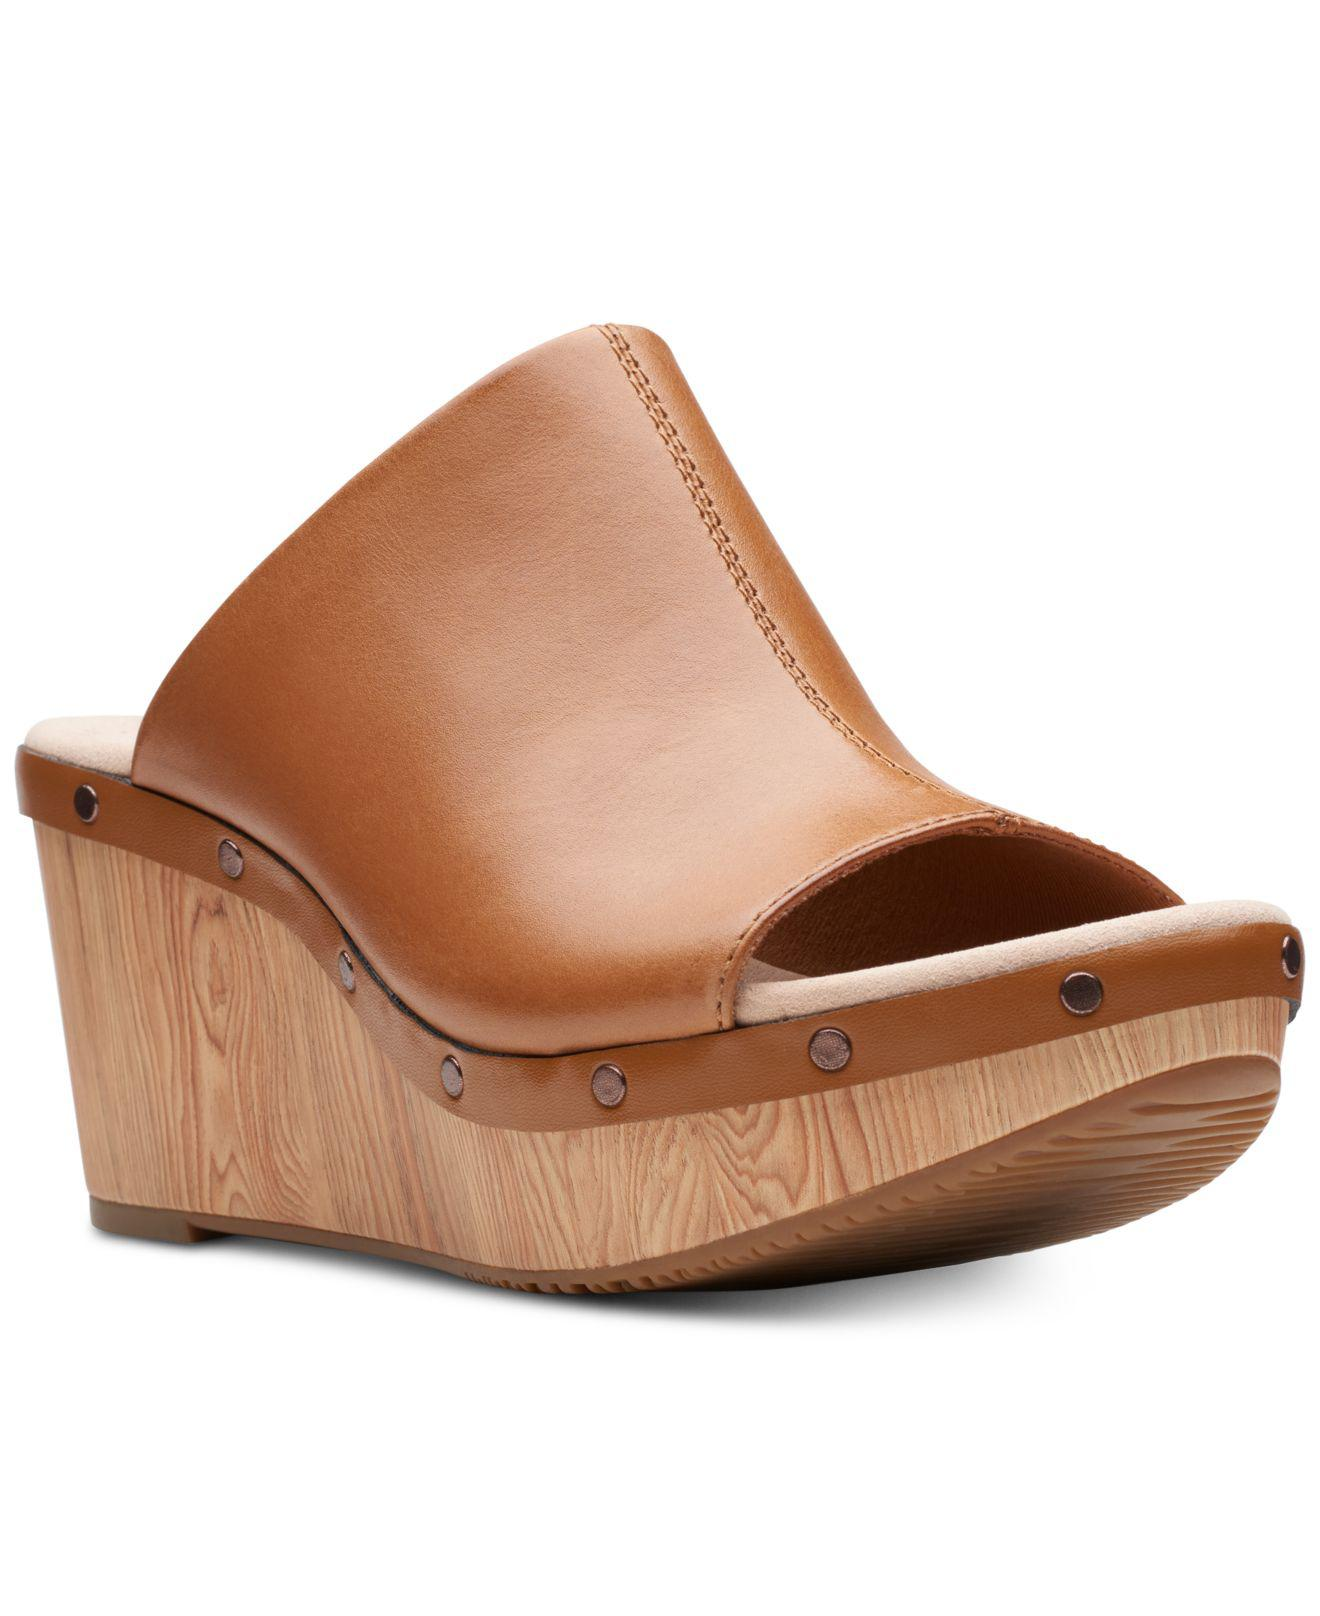 60d2ce3e6f22 Clarks Annadel Molly Wedge Sandals in Brown - Lyst